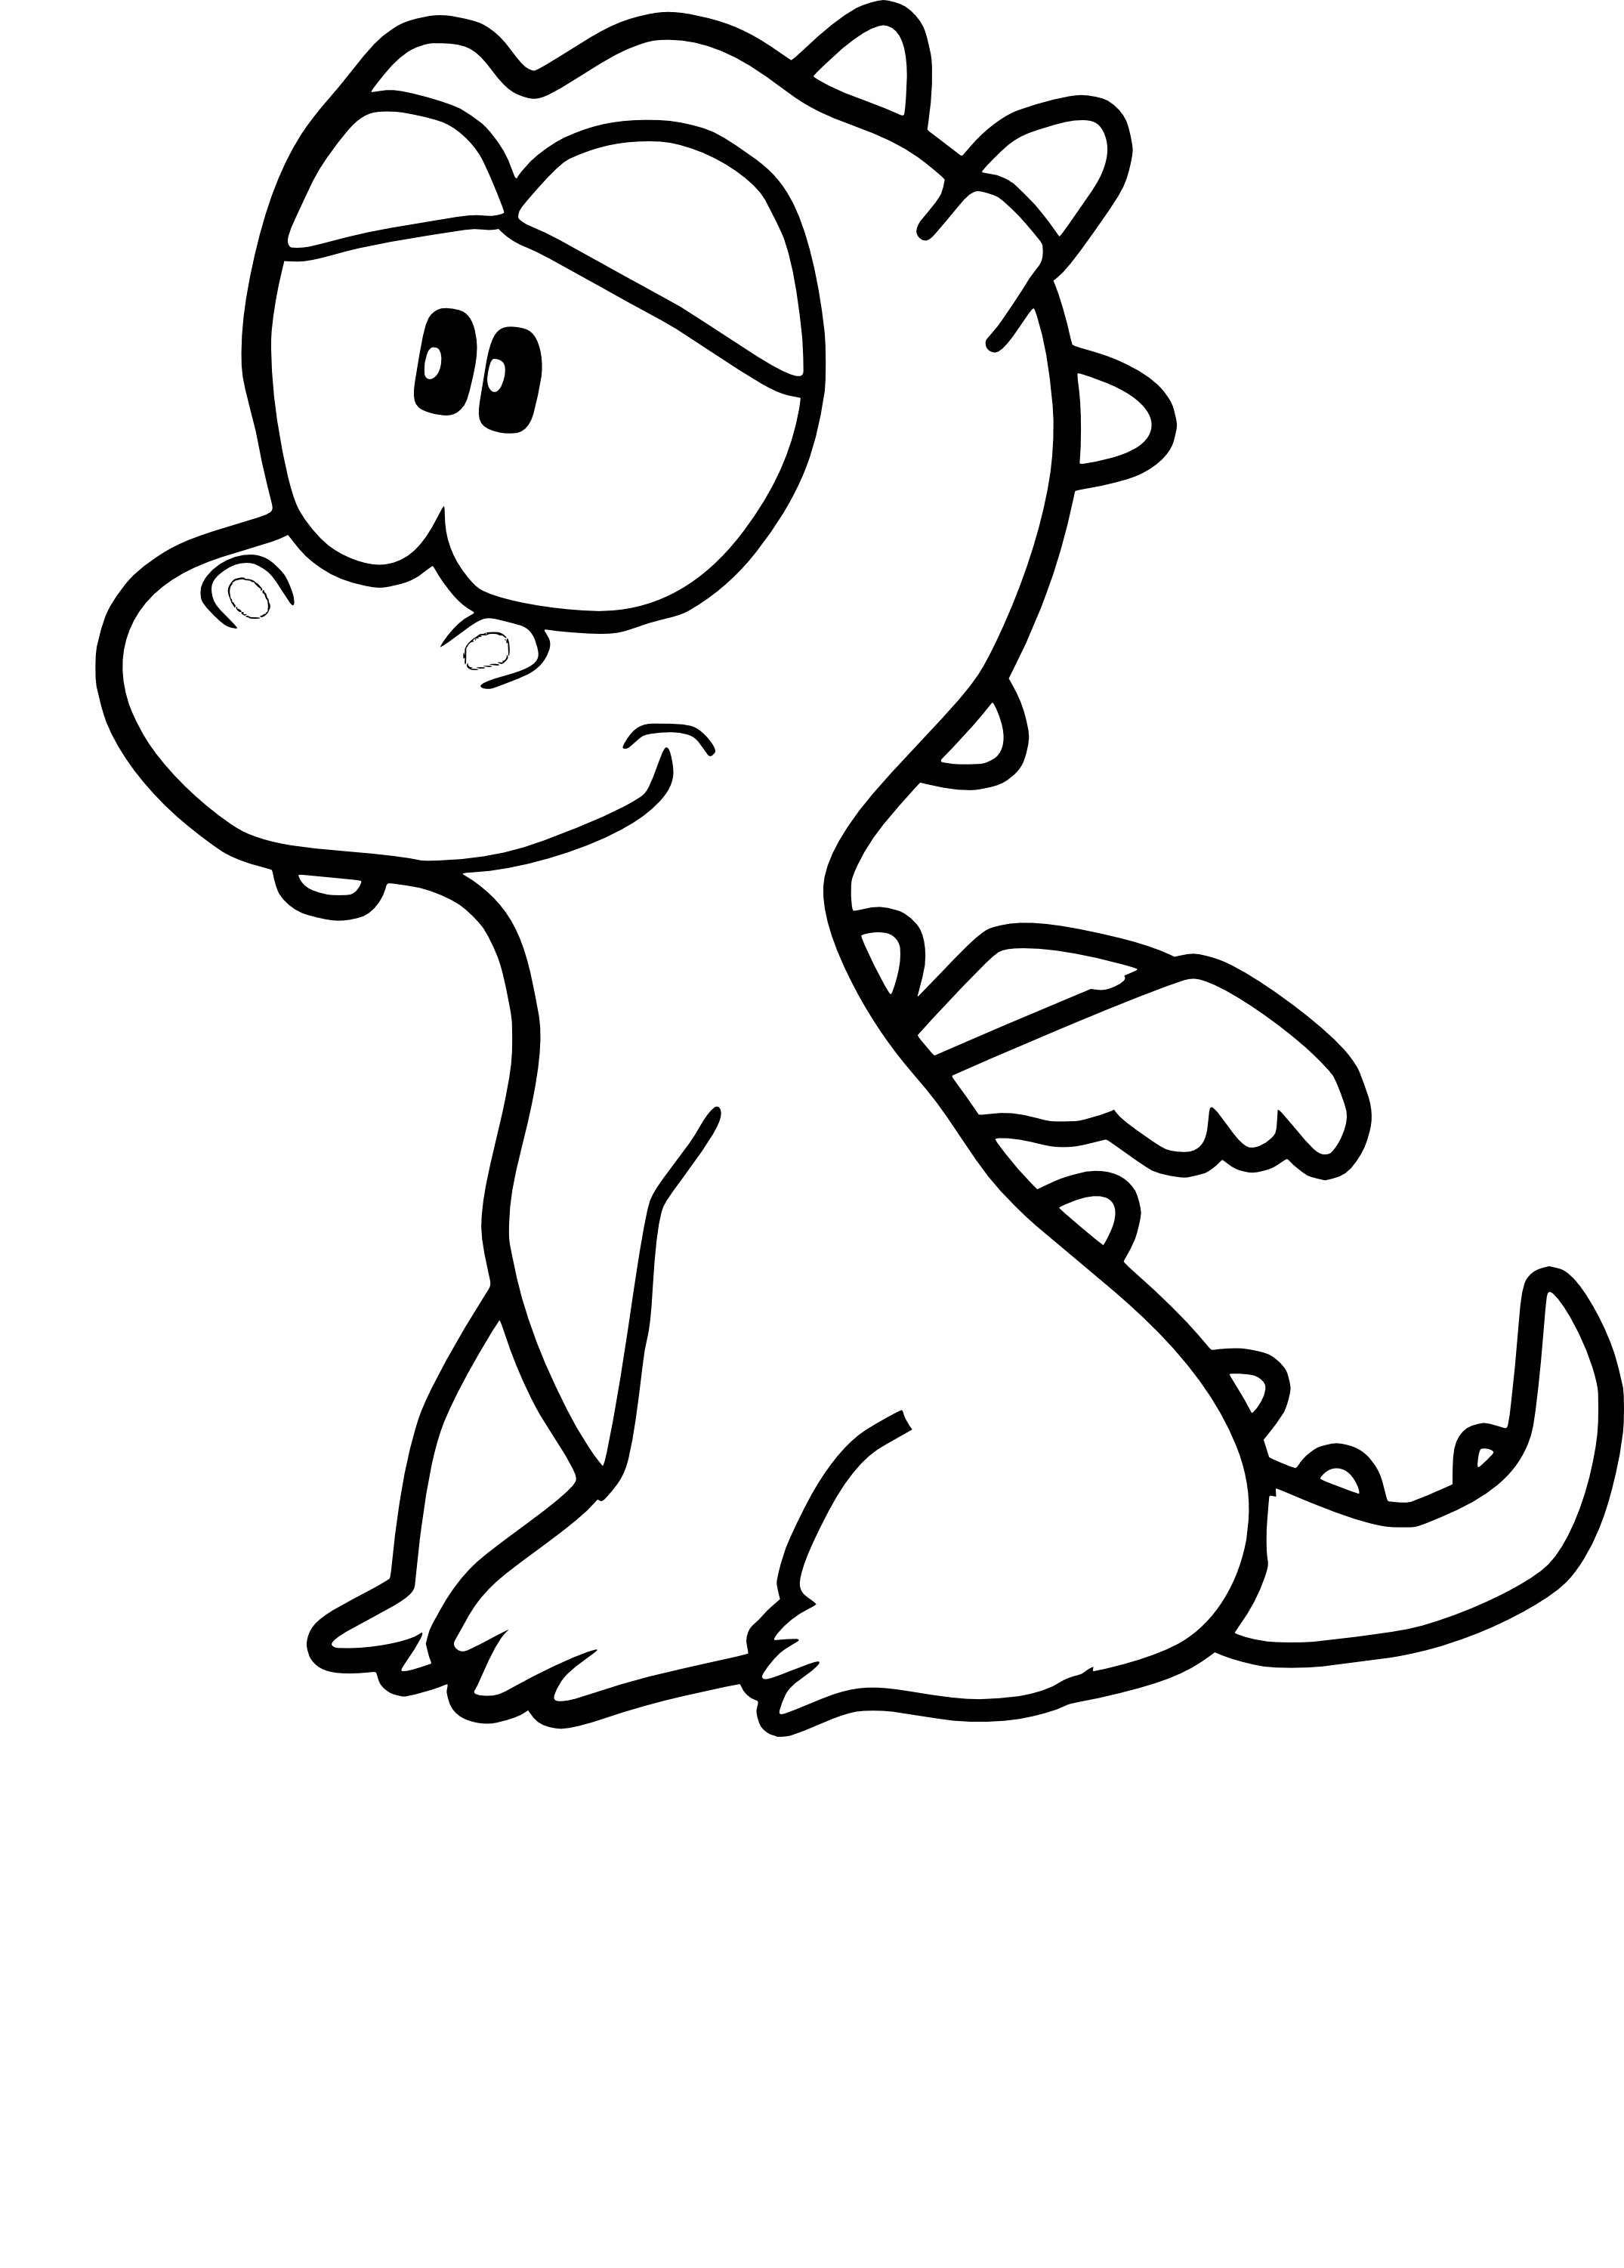 Coloriages de bebe dragons - Coloriages de dragons ...